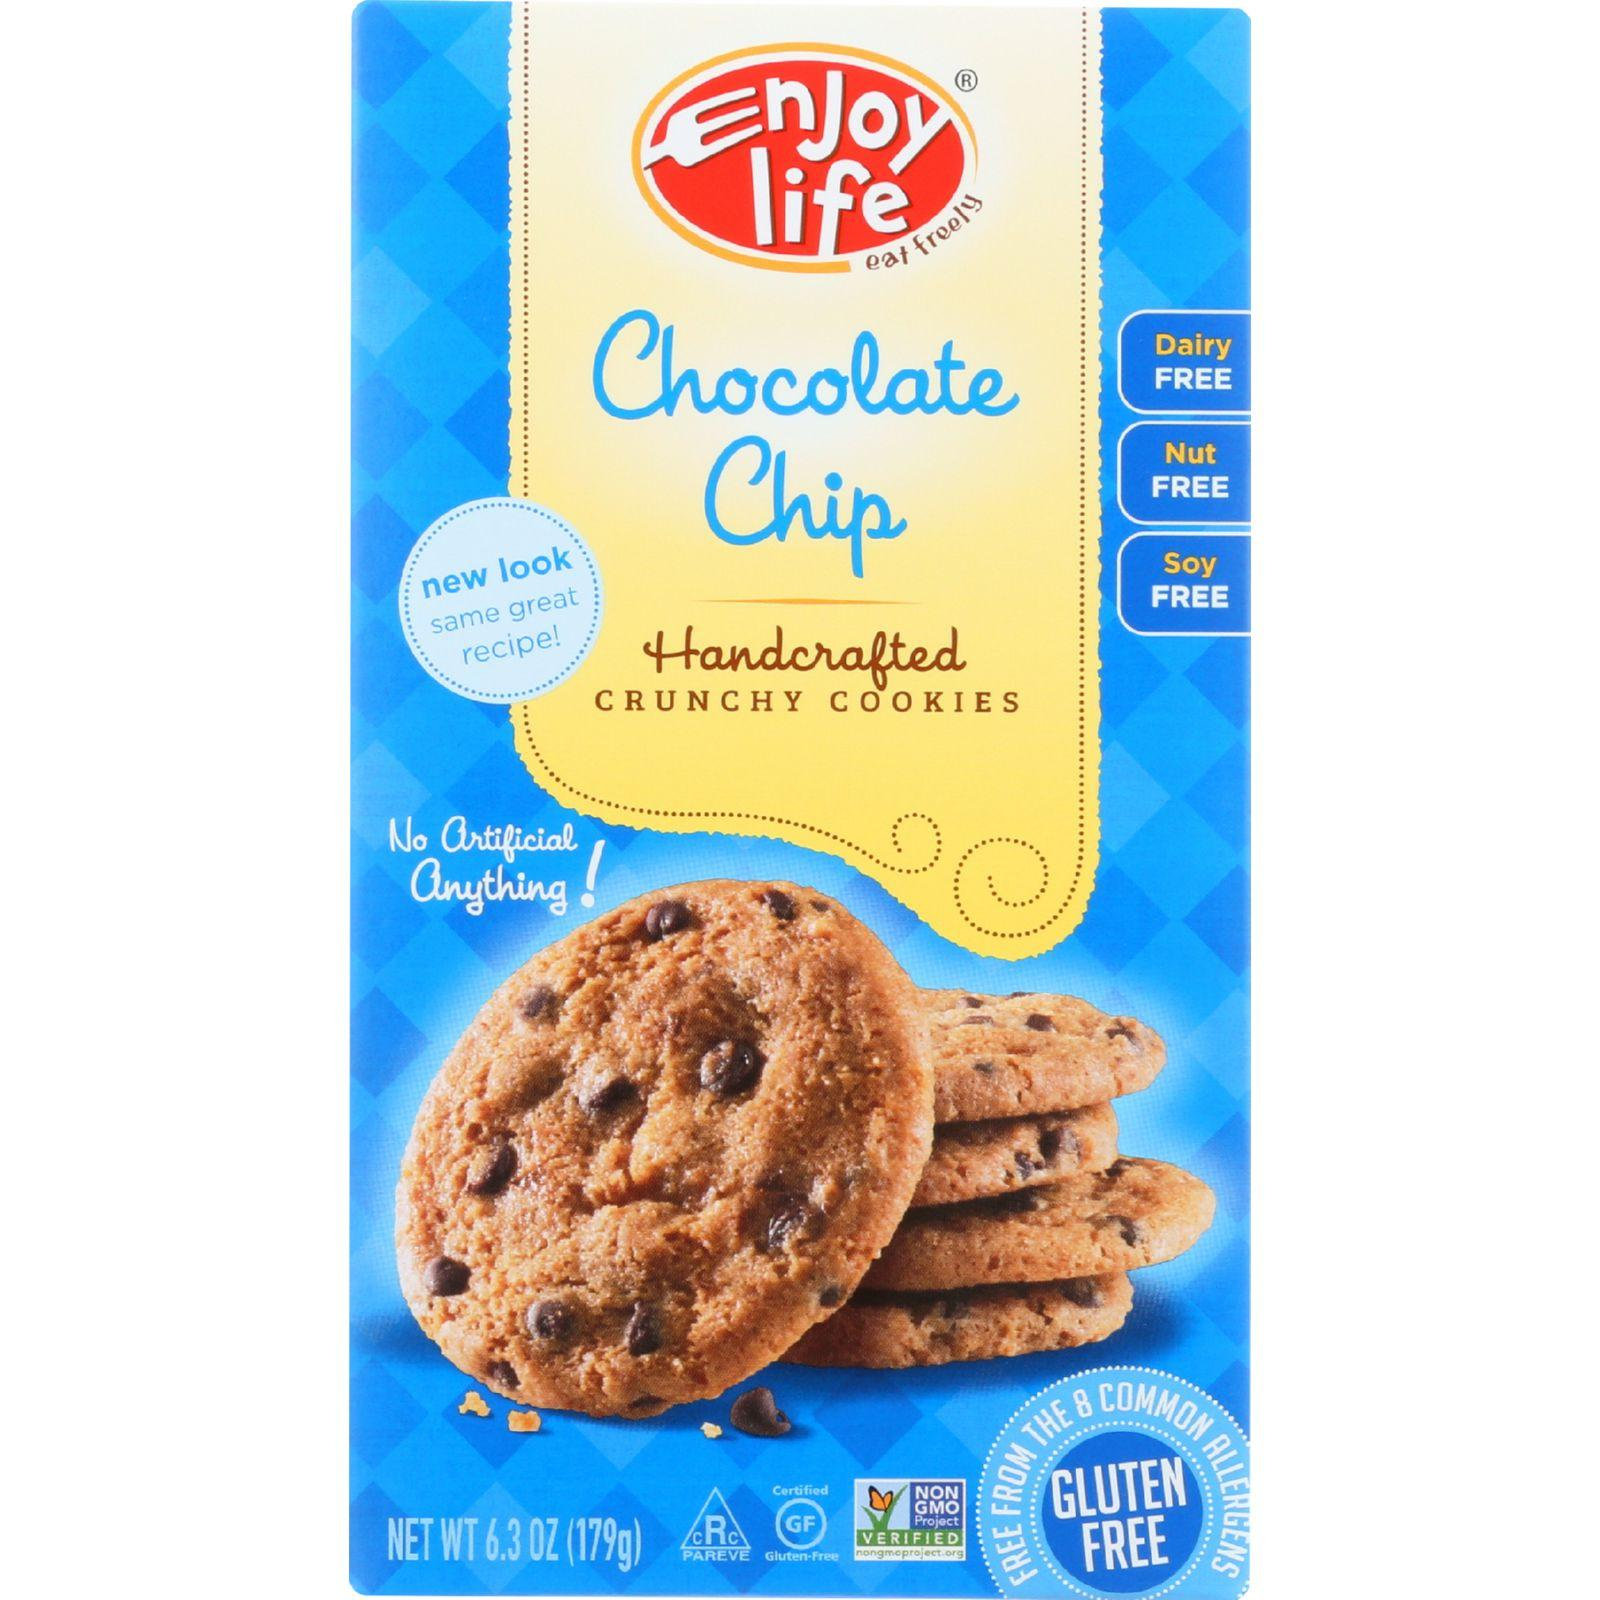 Enjoy Life Chocolate Chip Crunch Cookie